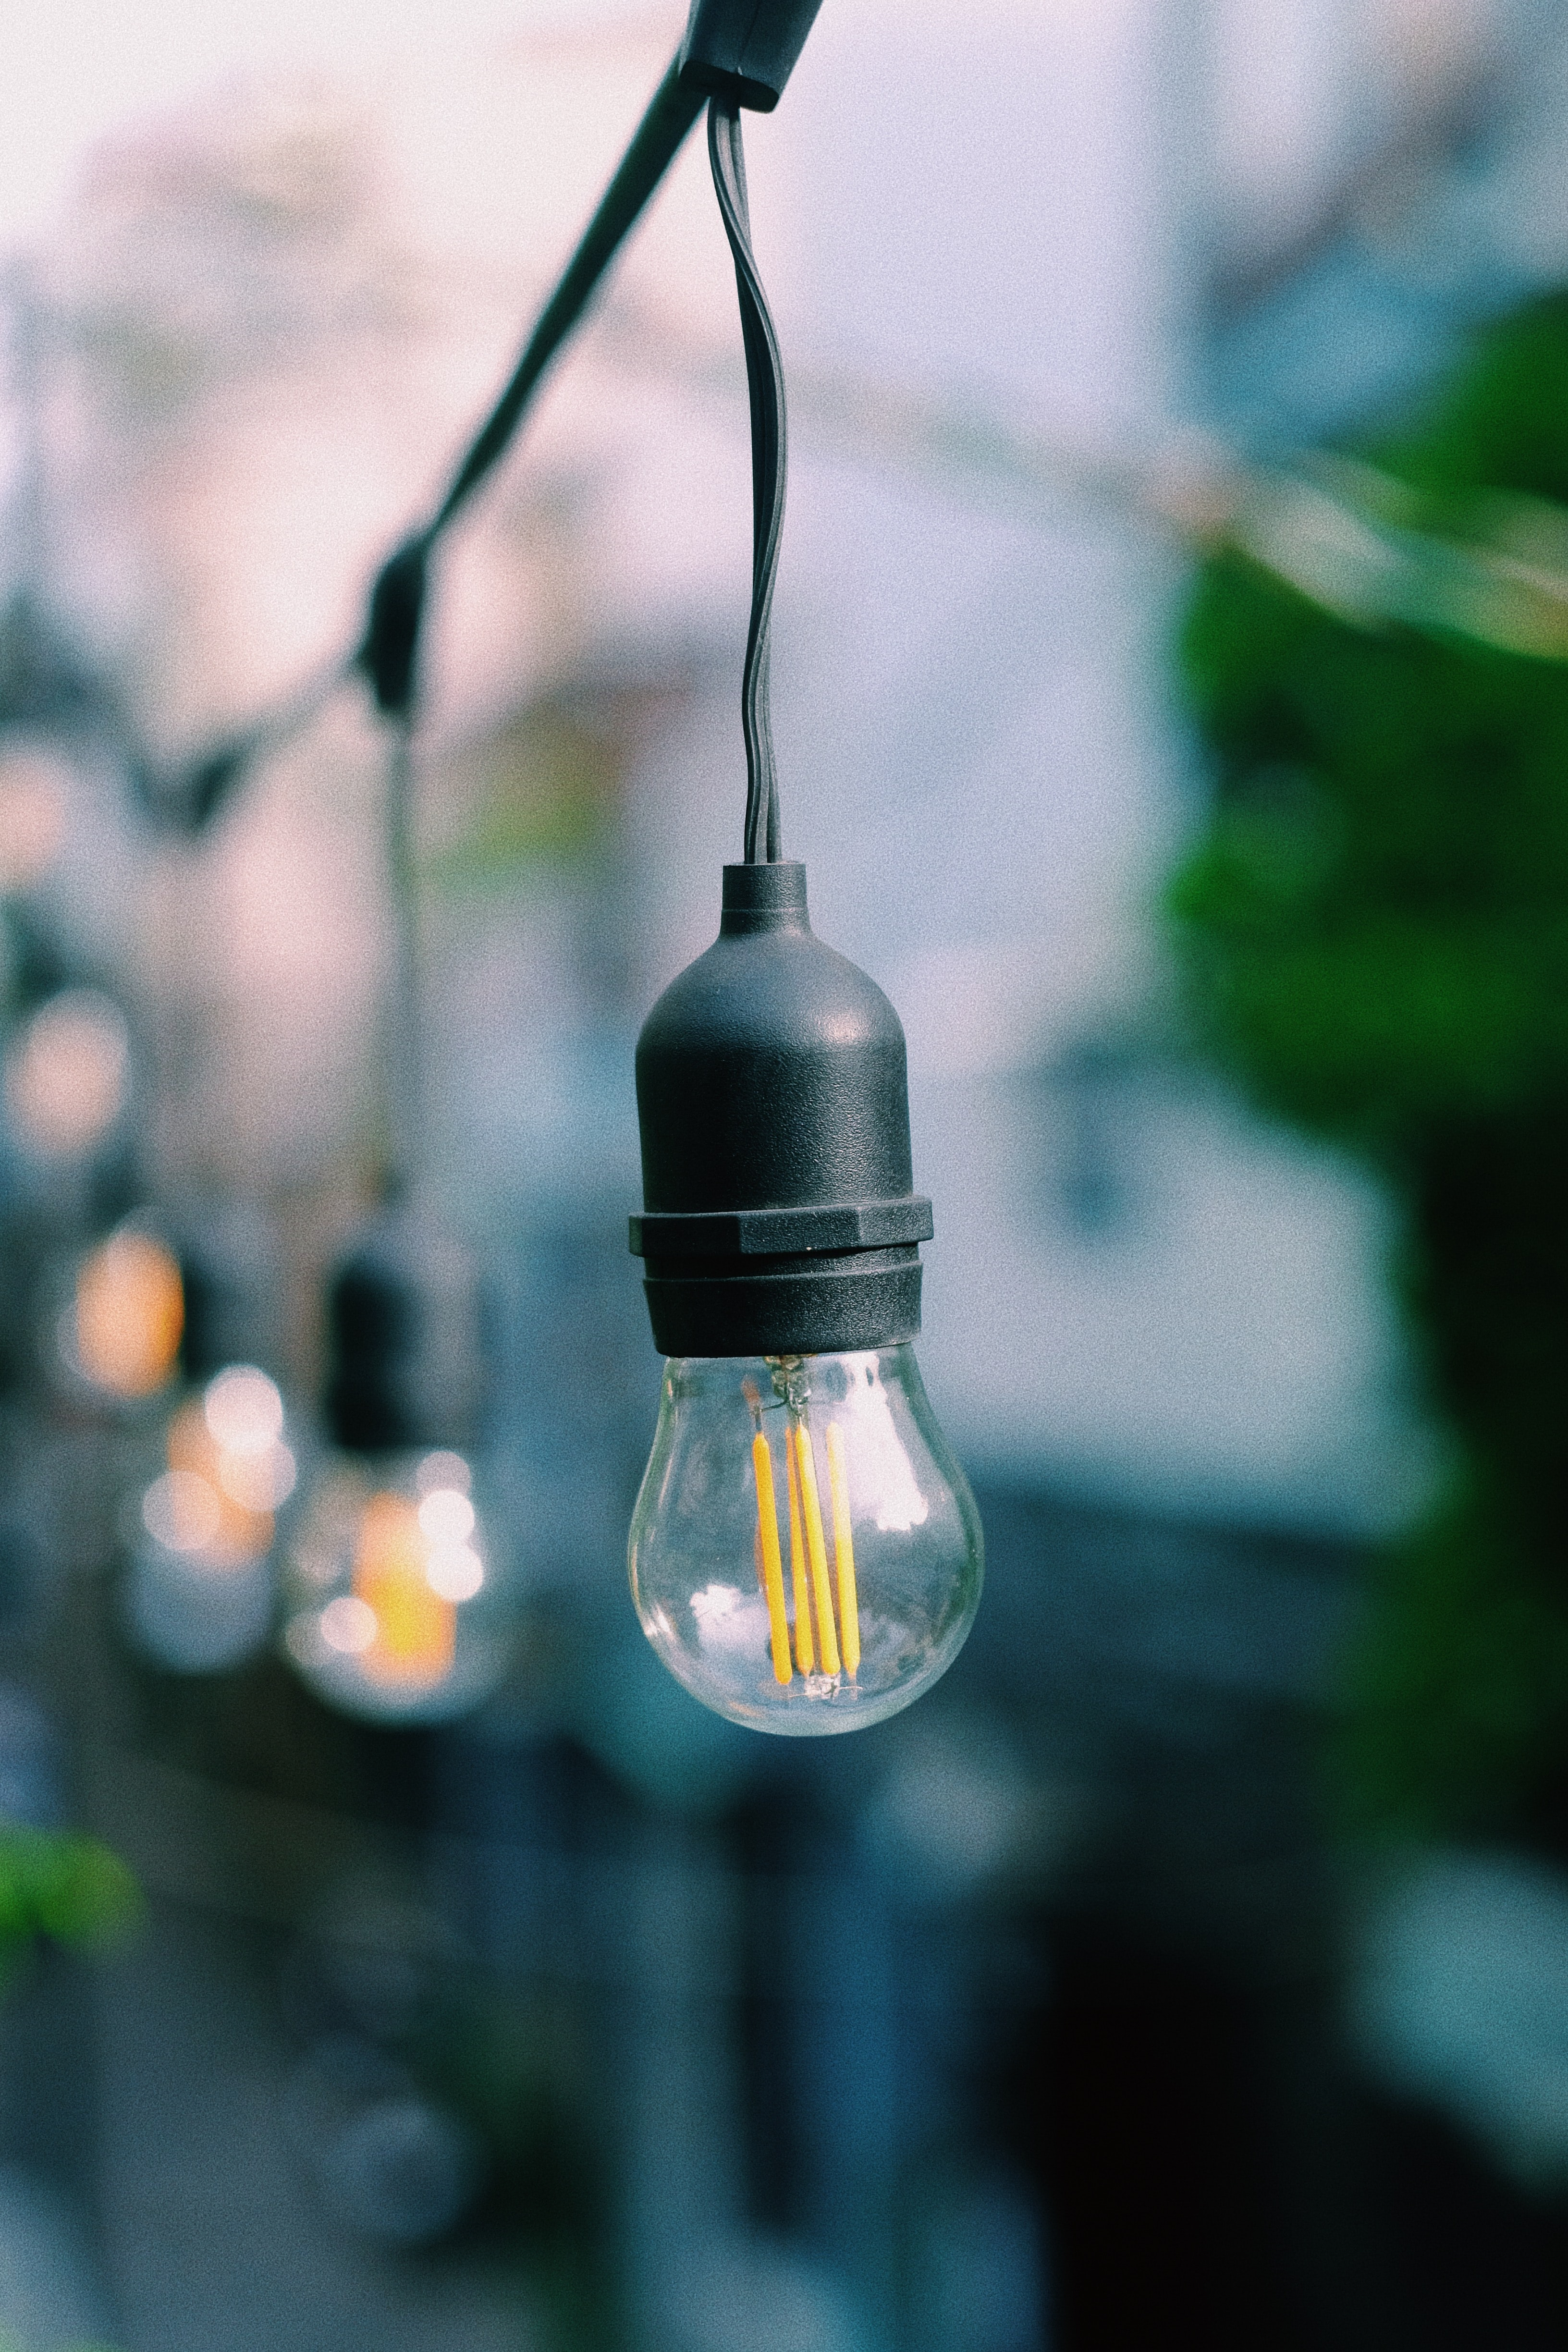 selective focus photography of clear string light